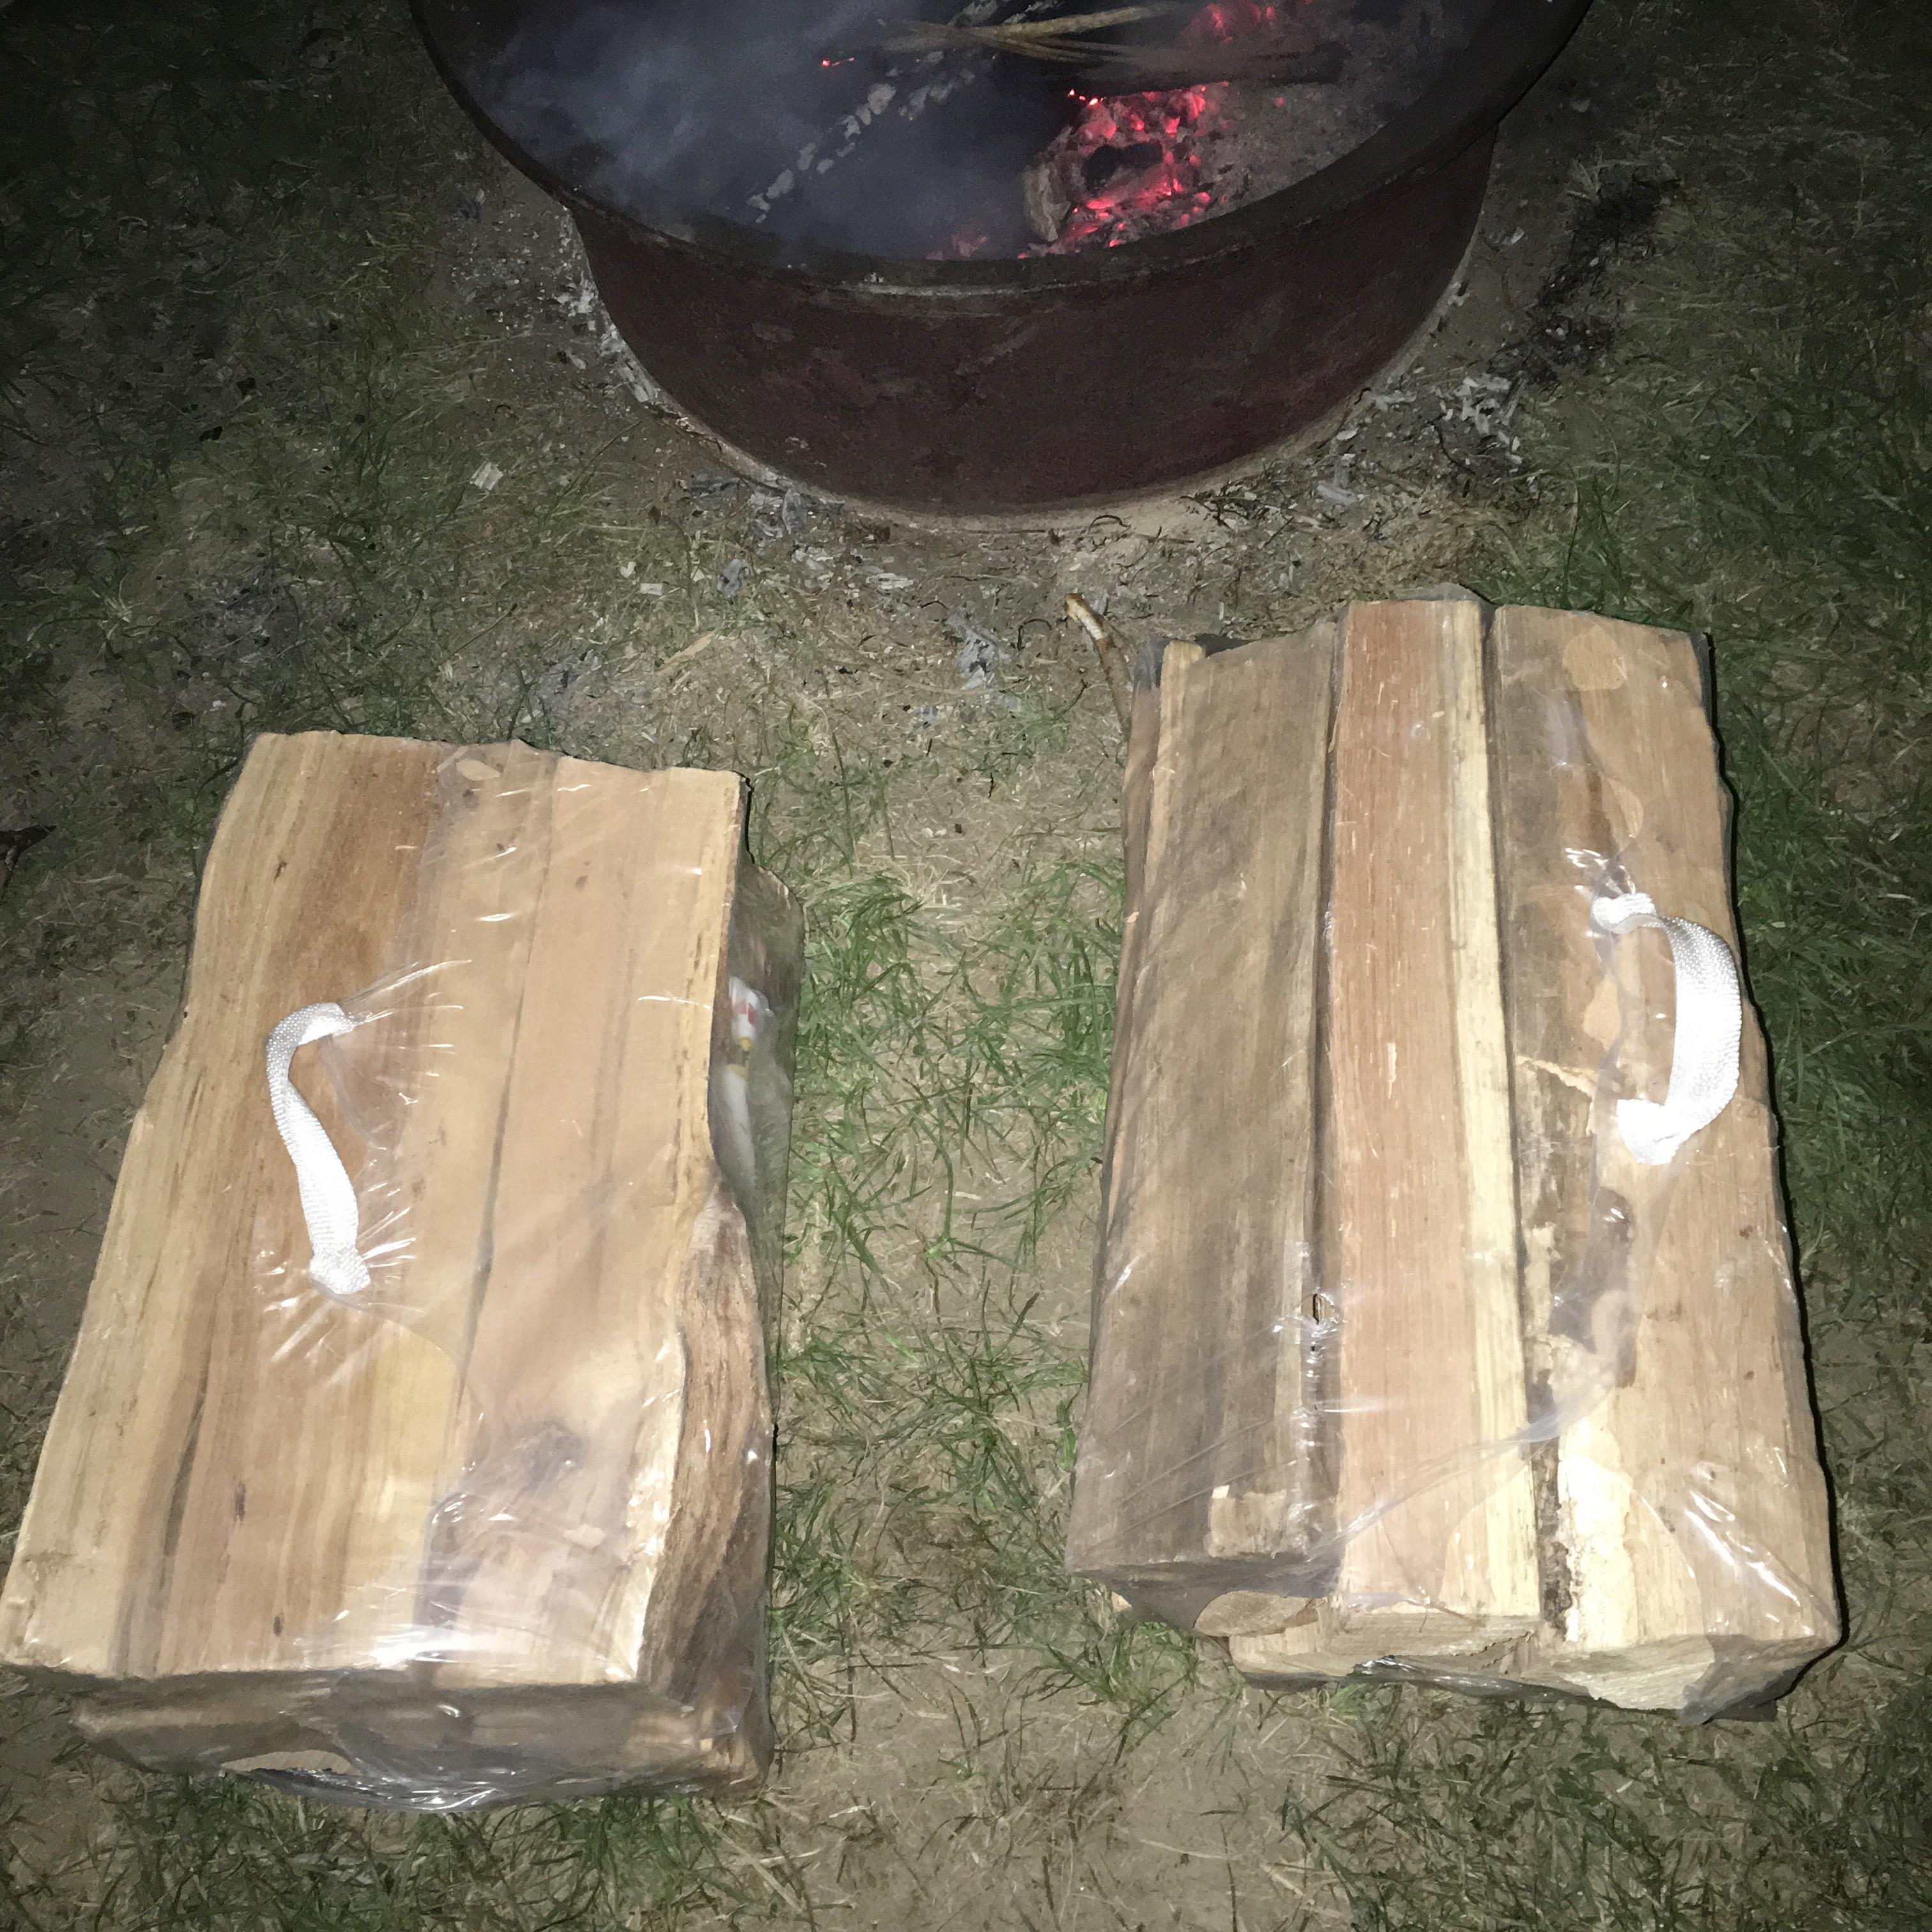 Picture of Dry Firewood